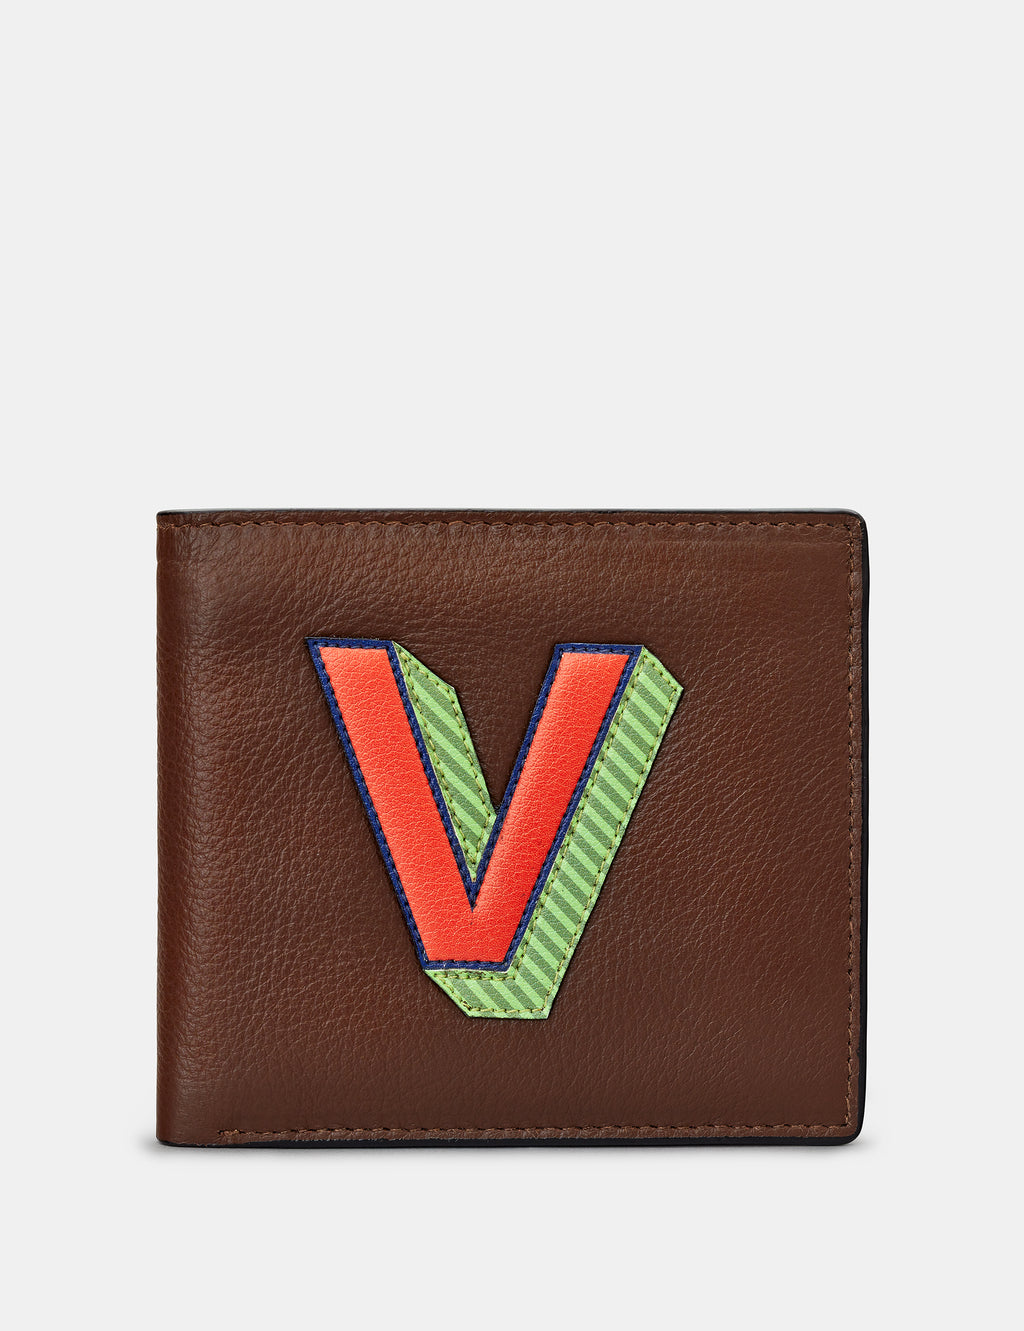 V Initial Brown Leather Wallet